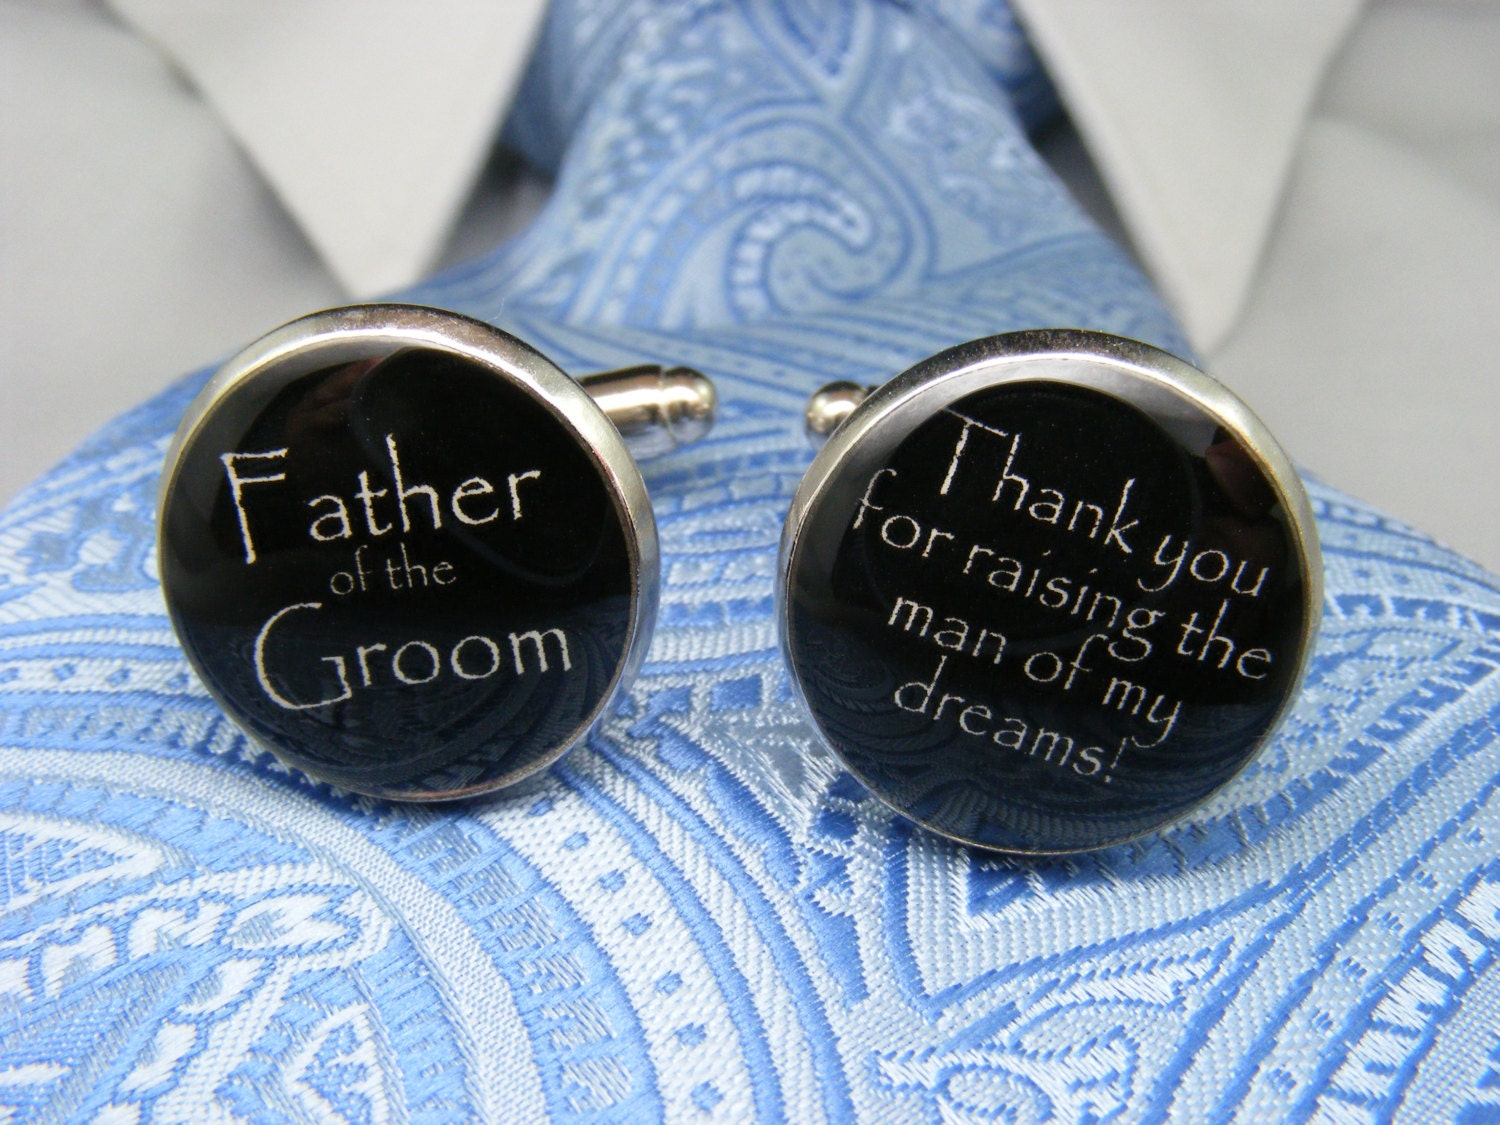 Grooms Gifts Ideas From Bride: Father Of The Groom Cufflinks Gift From The Bride Father